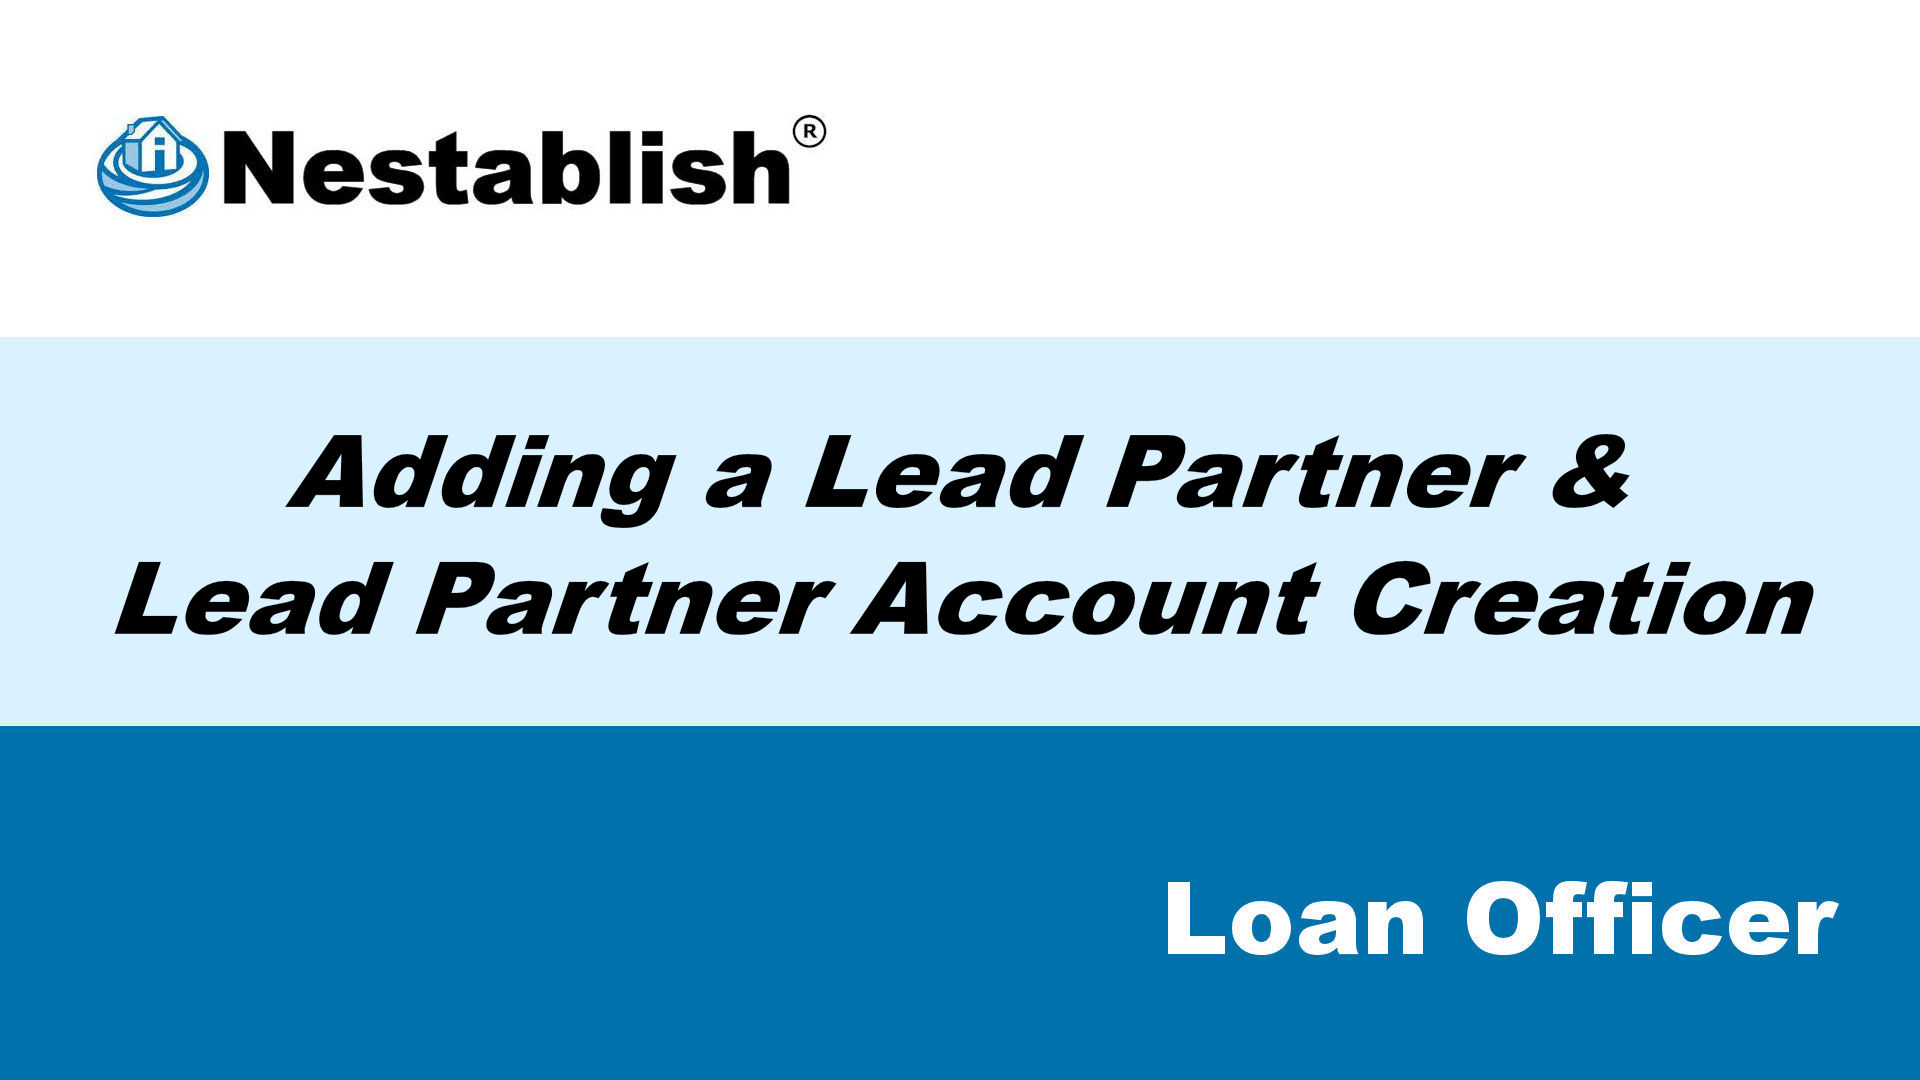 lead partner account creation placeholder